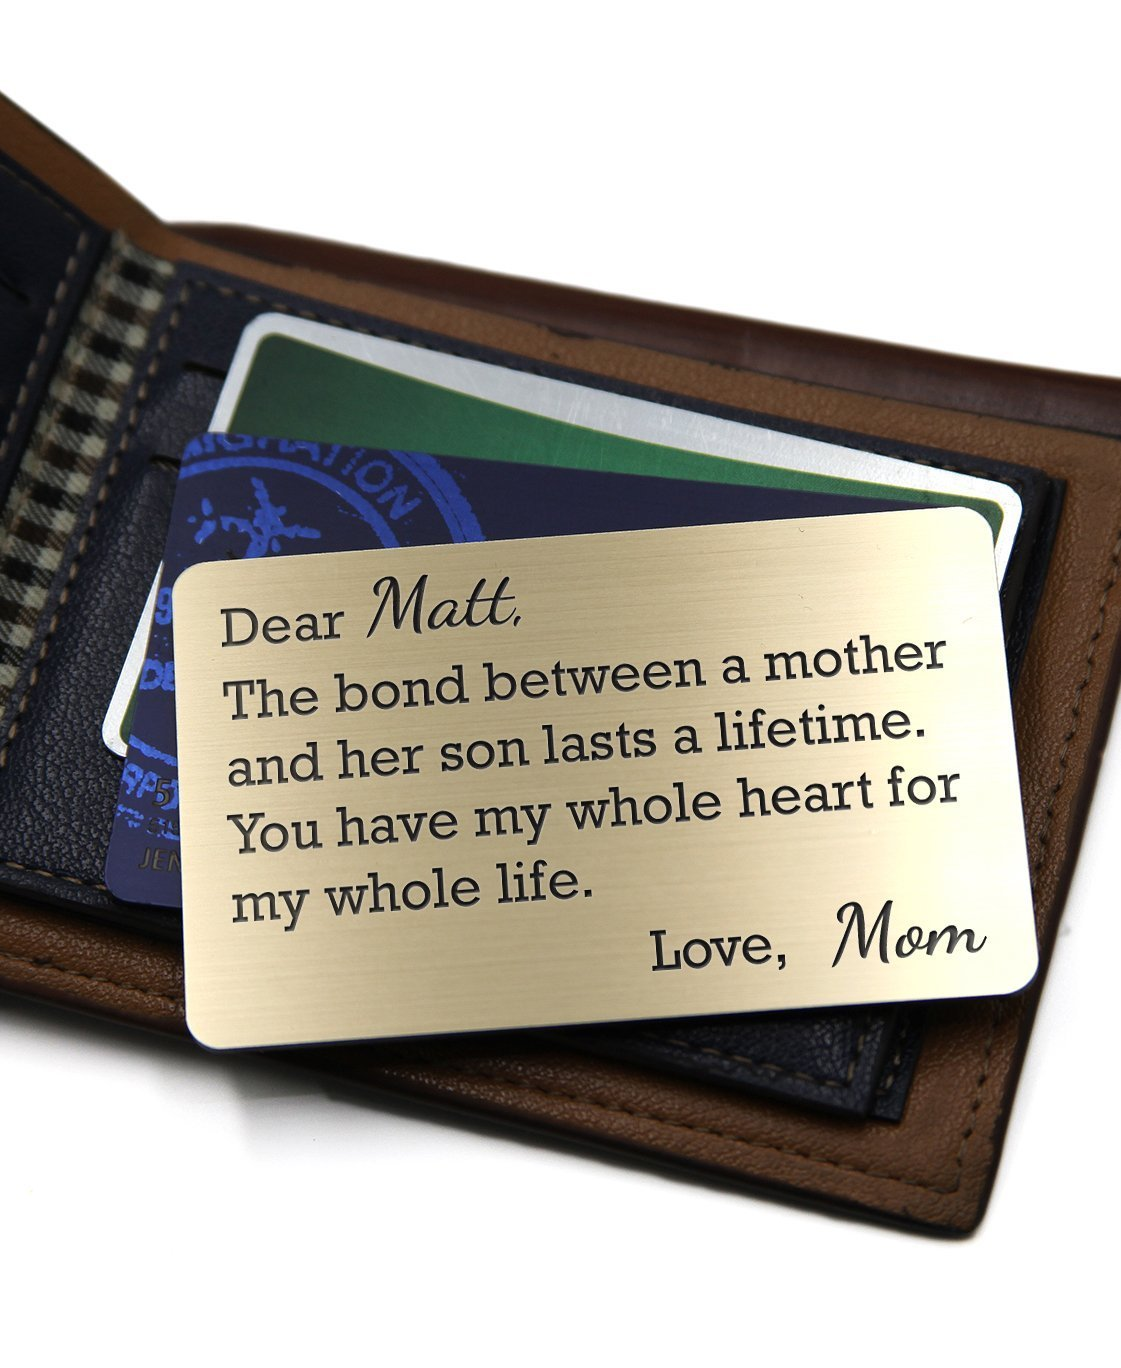 Personalized Wallet Card Insert - Mom and Son